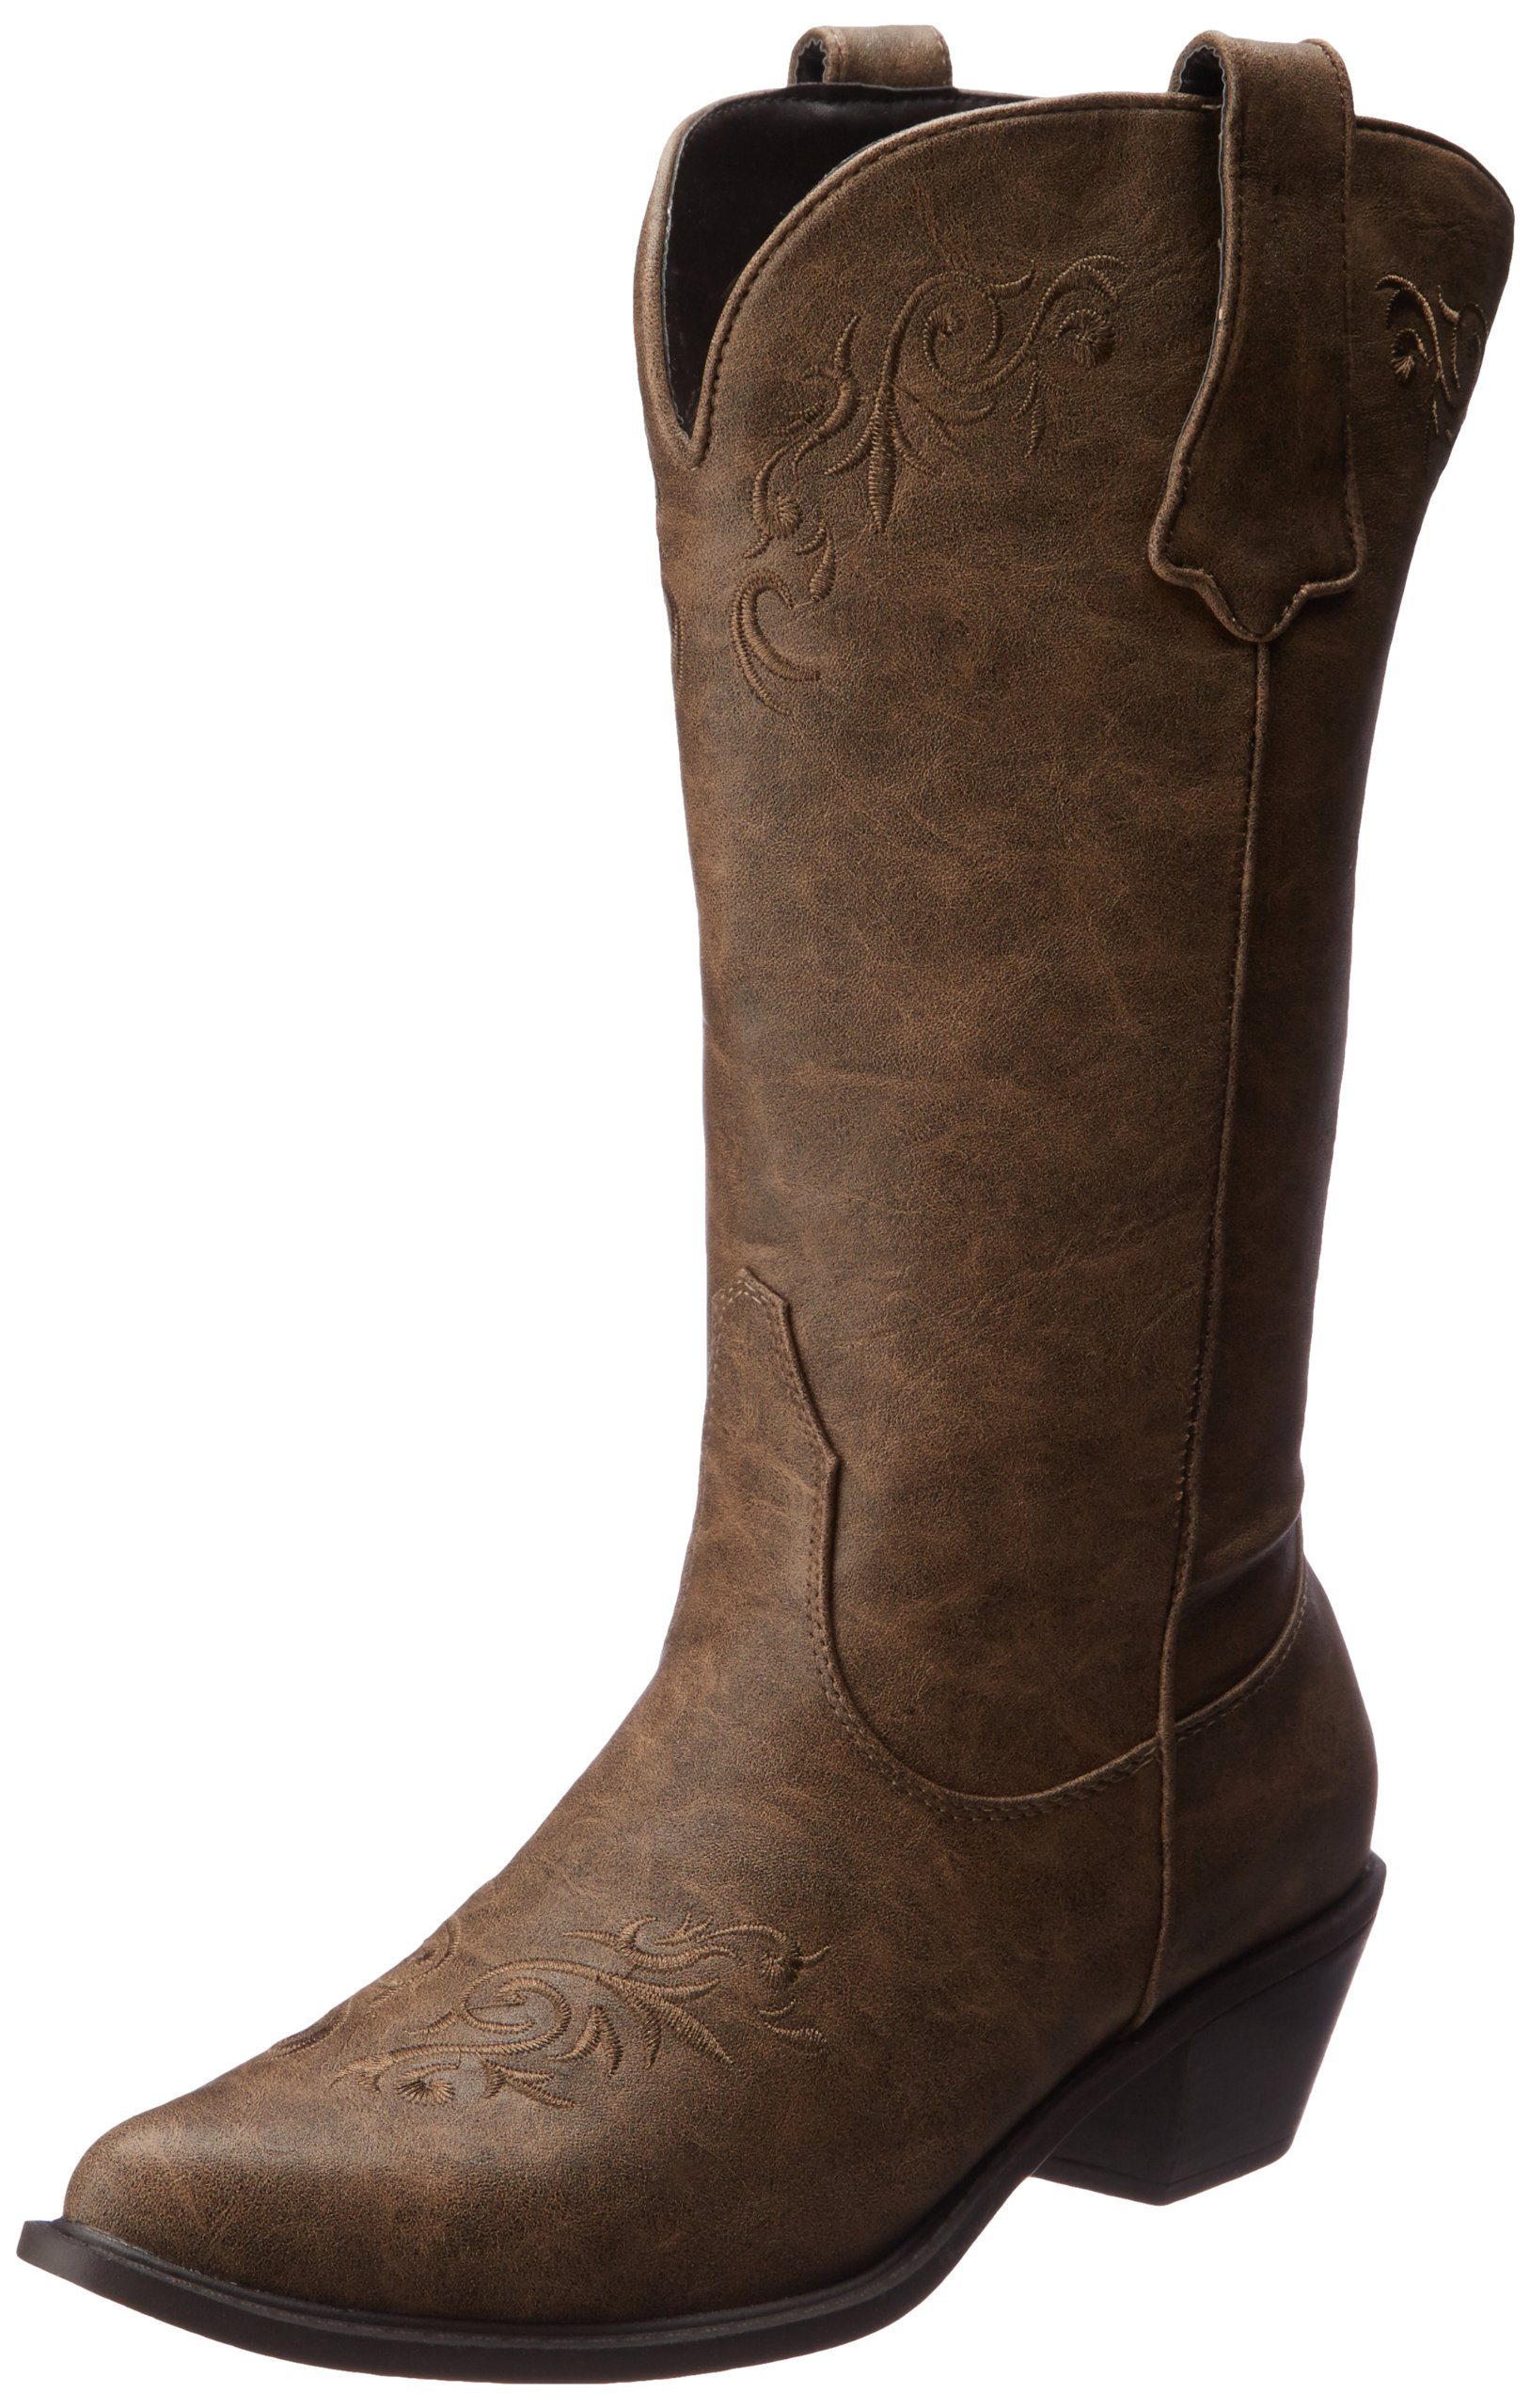 Roper Women's Western Embroidered Fashion Boot Tan Boot 8 B - Medium